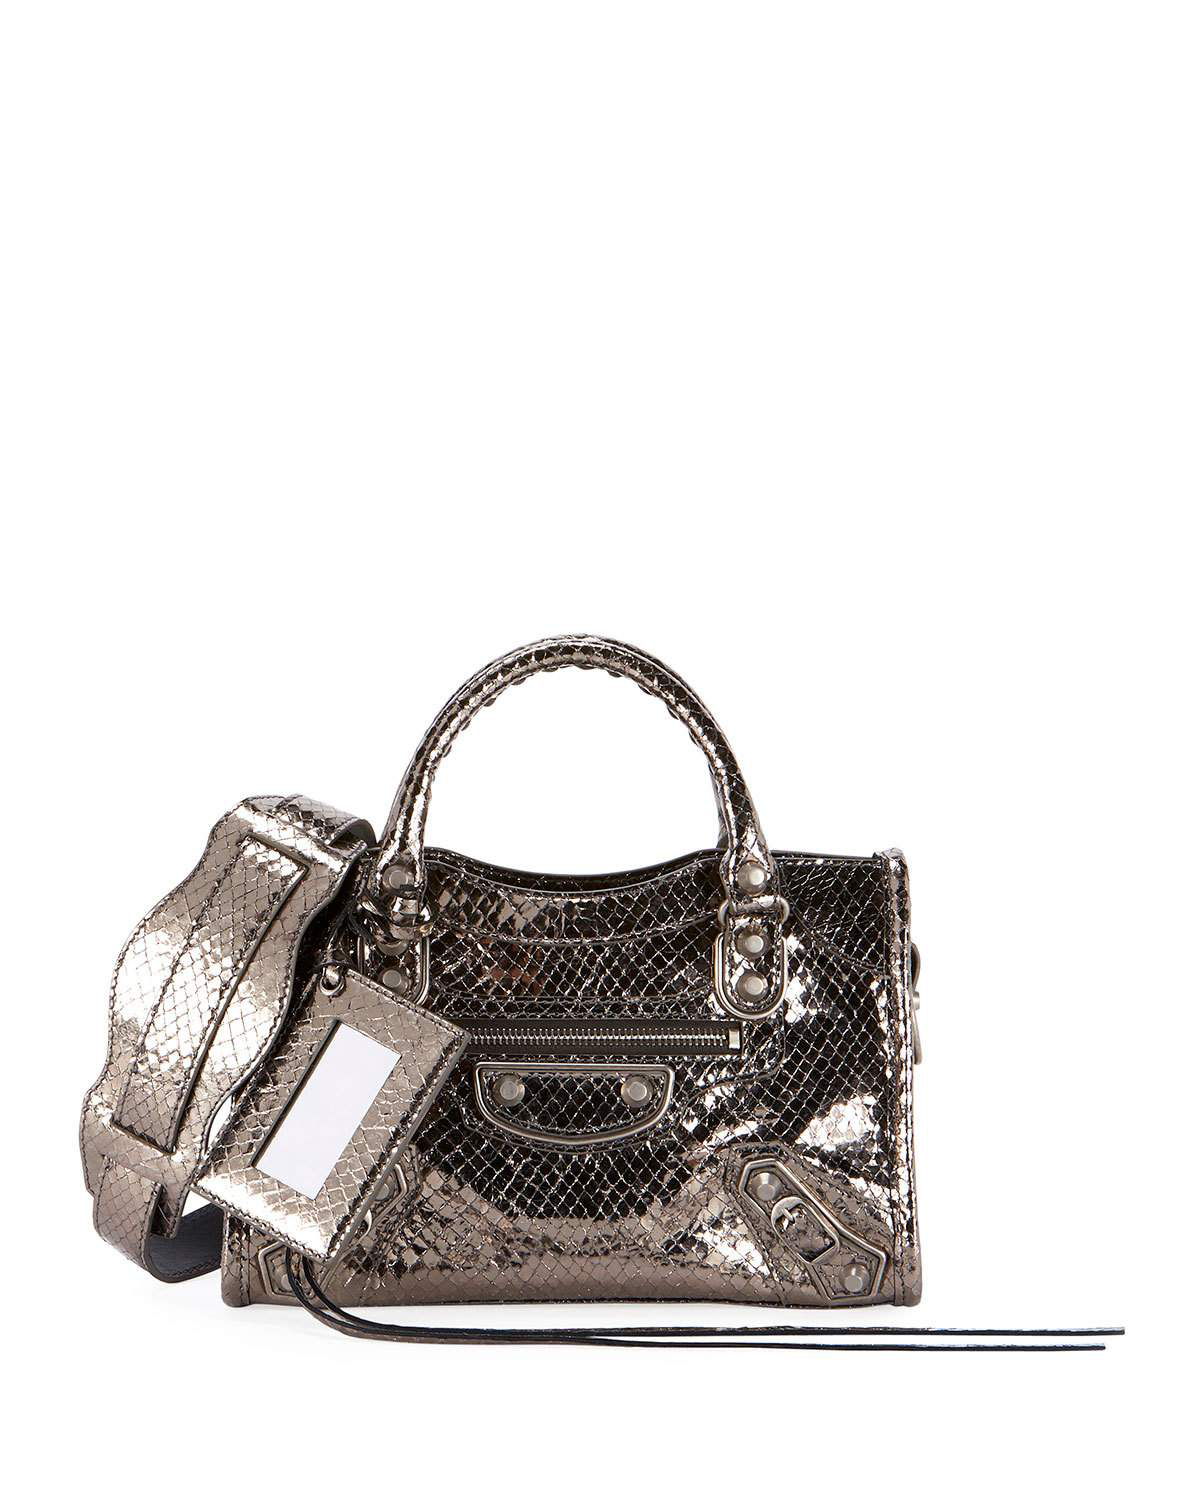 512da2053e649 Balenciaga Metallic Mini City Croc Embossed Leather Bag - Grey In Metallic  Dark Grey